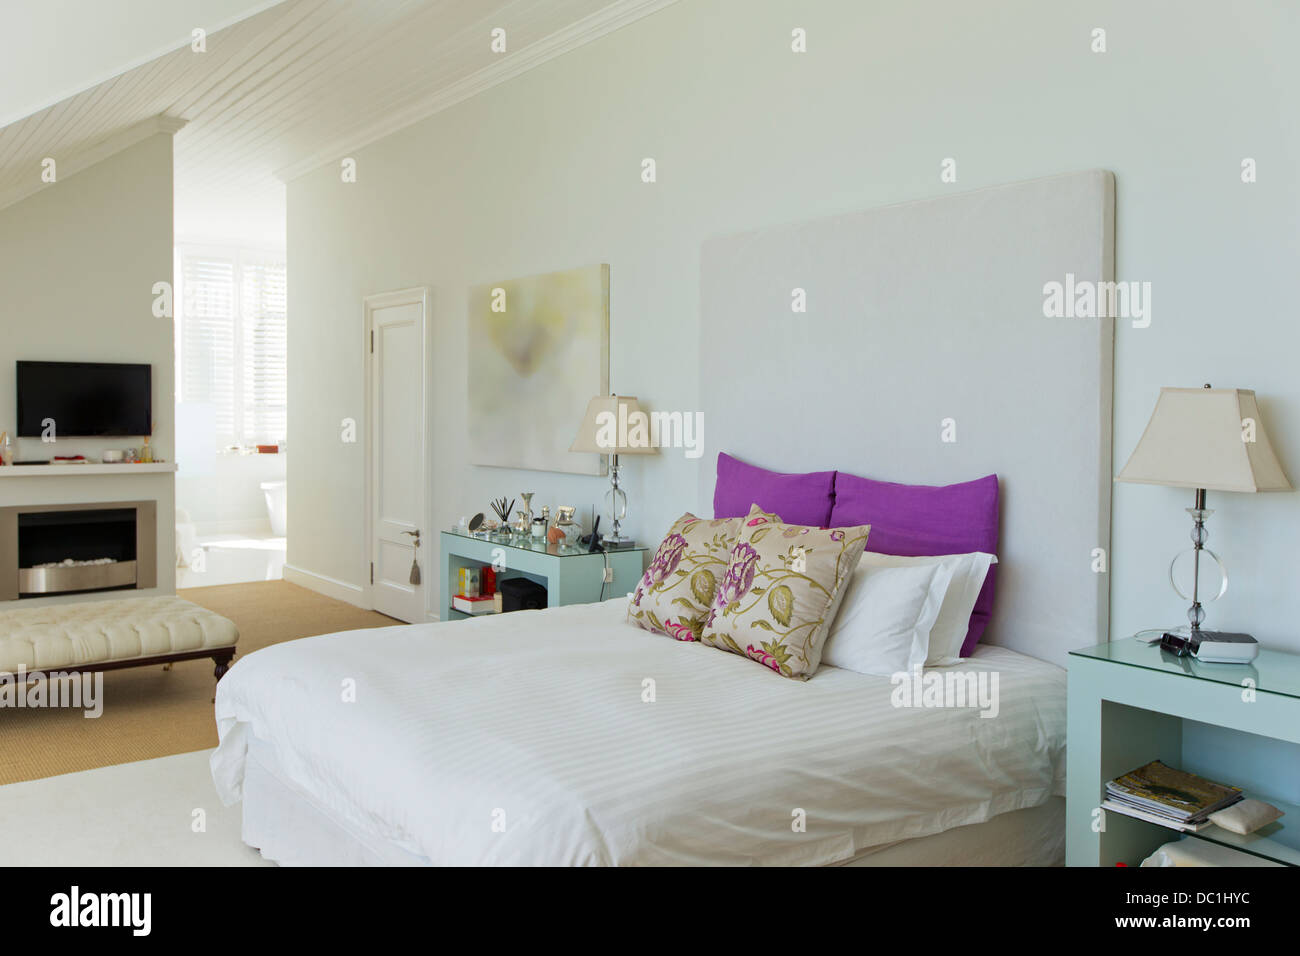 Bed in luxury bedroom - Stock Image